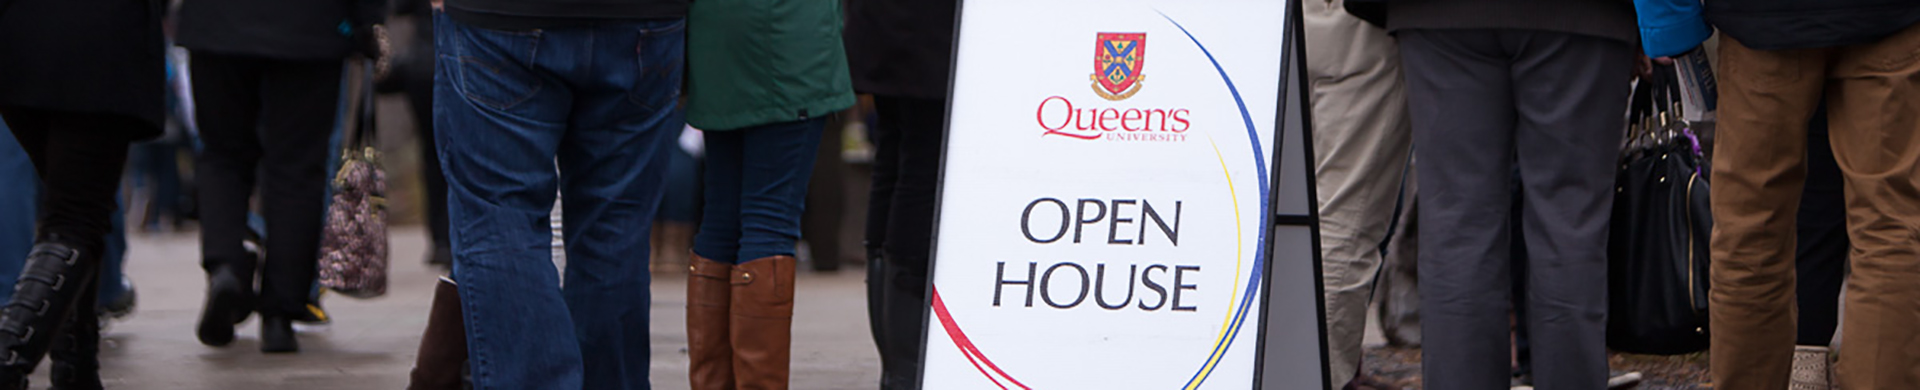 Queen's open house sign with people's feet around it